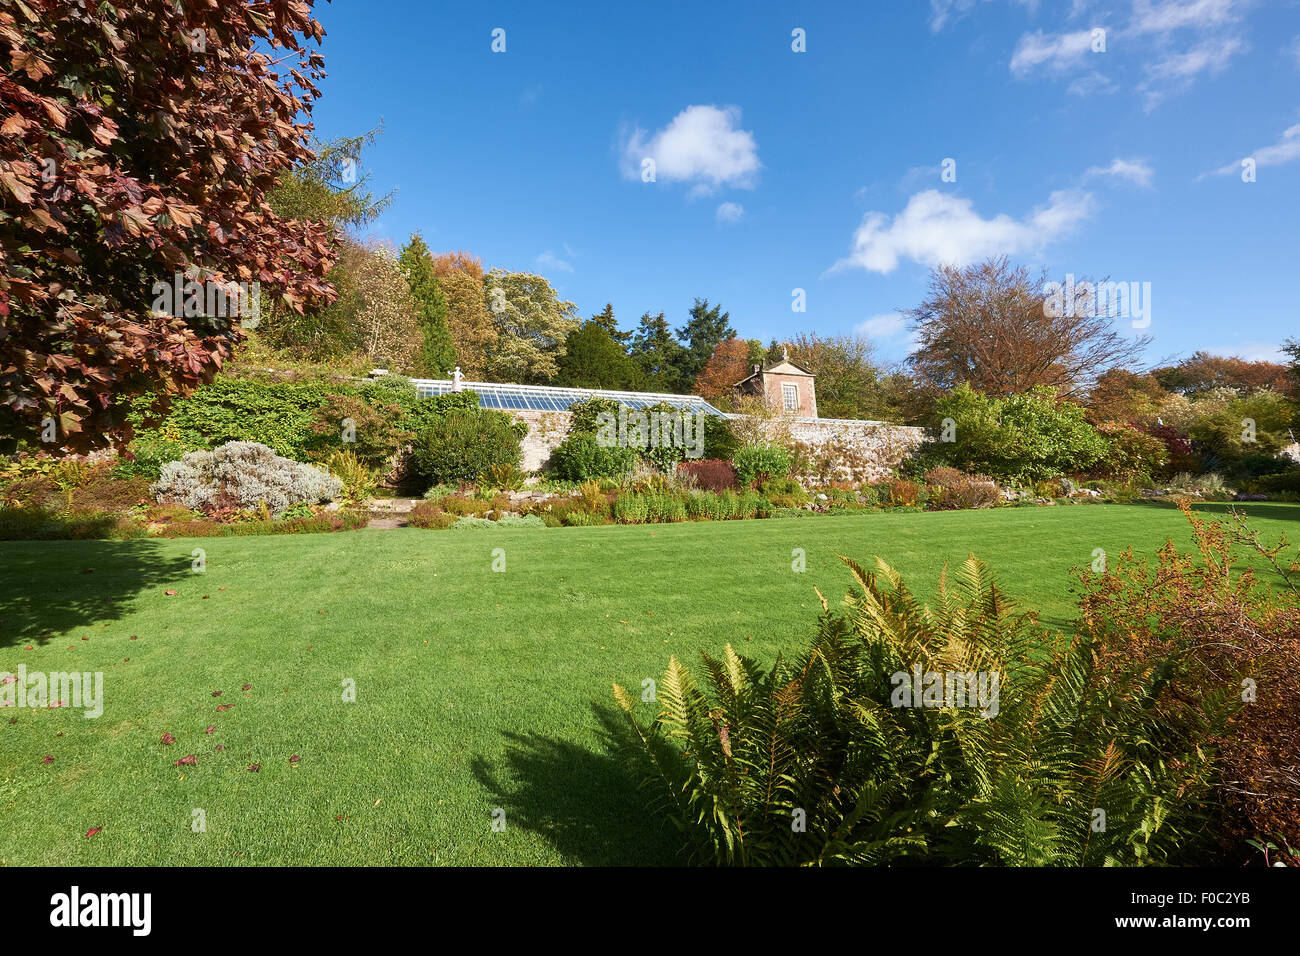 Wallington House Gardens in the North East England, UK. - Stock Image